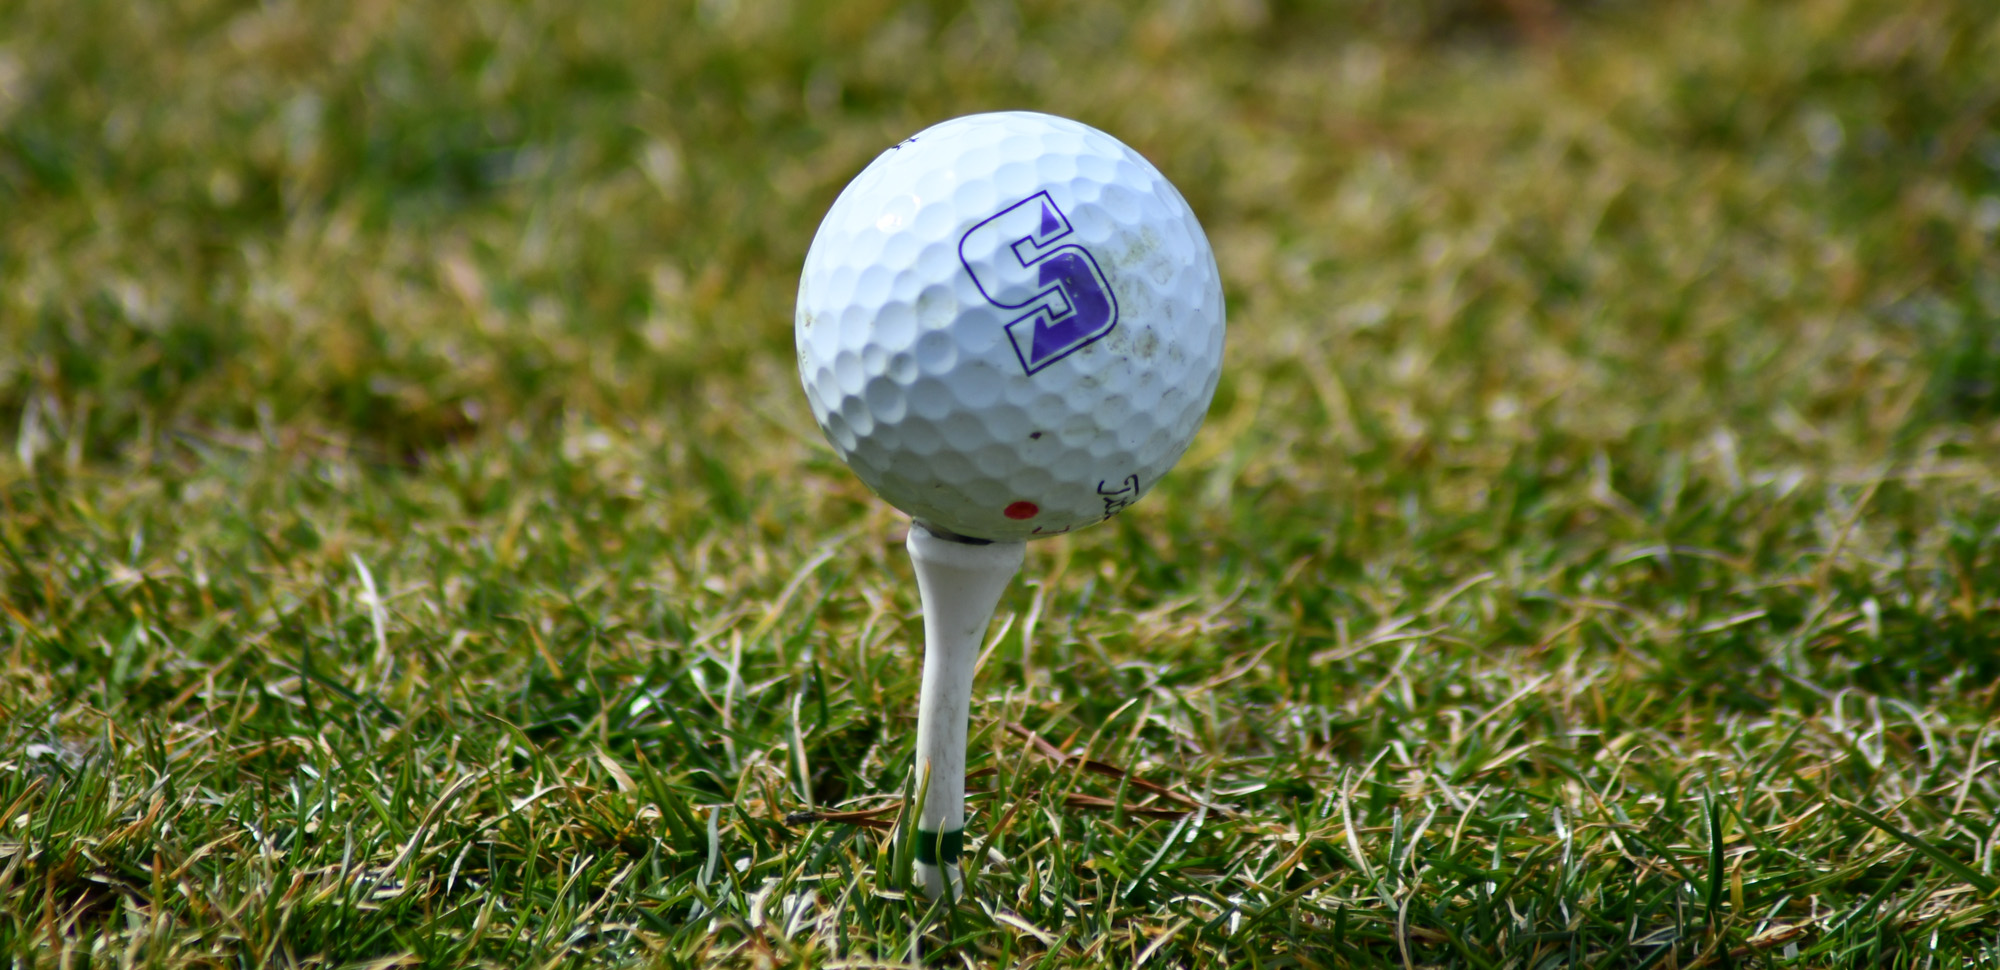 Scranton will be back in action on Thursday against Marywood after the final round of the Glenmaura Collegiate Tournament was cancelled on Monday. © Photo by Timothy R. Dougherty / doubleeaglephotography.com